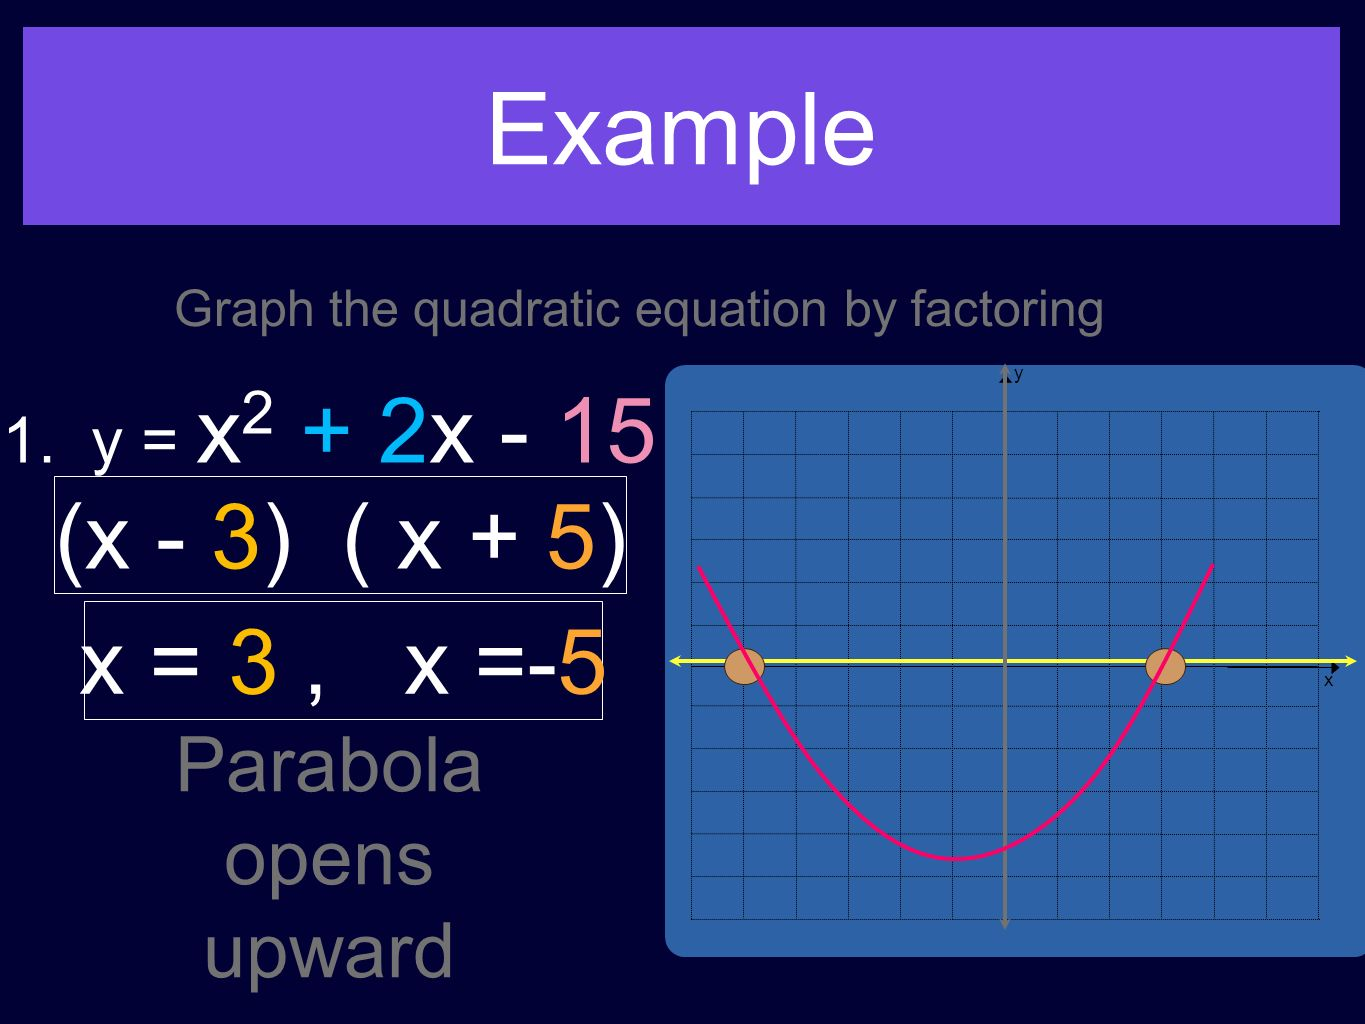 Graph the quadratic equation by factoring